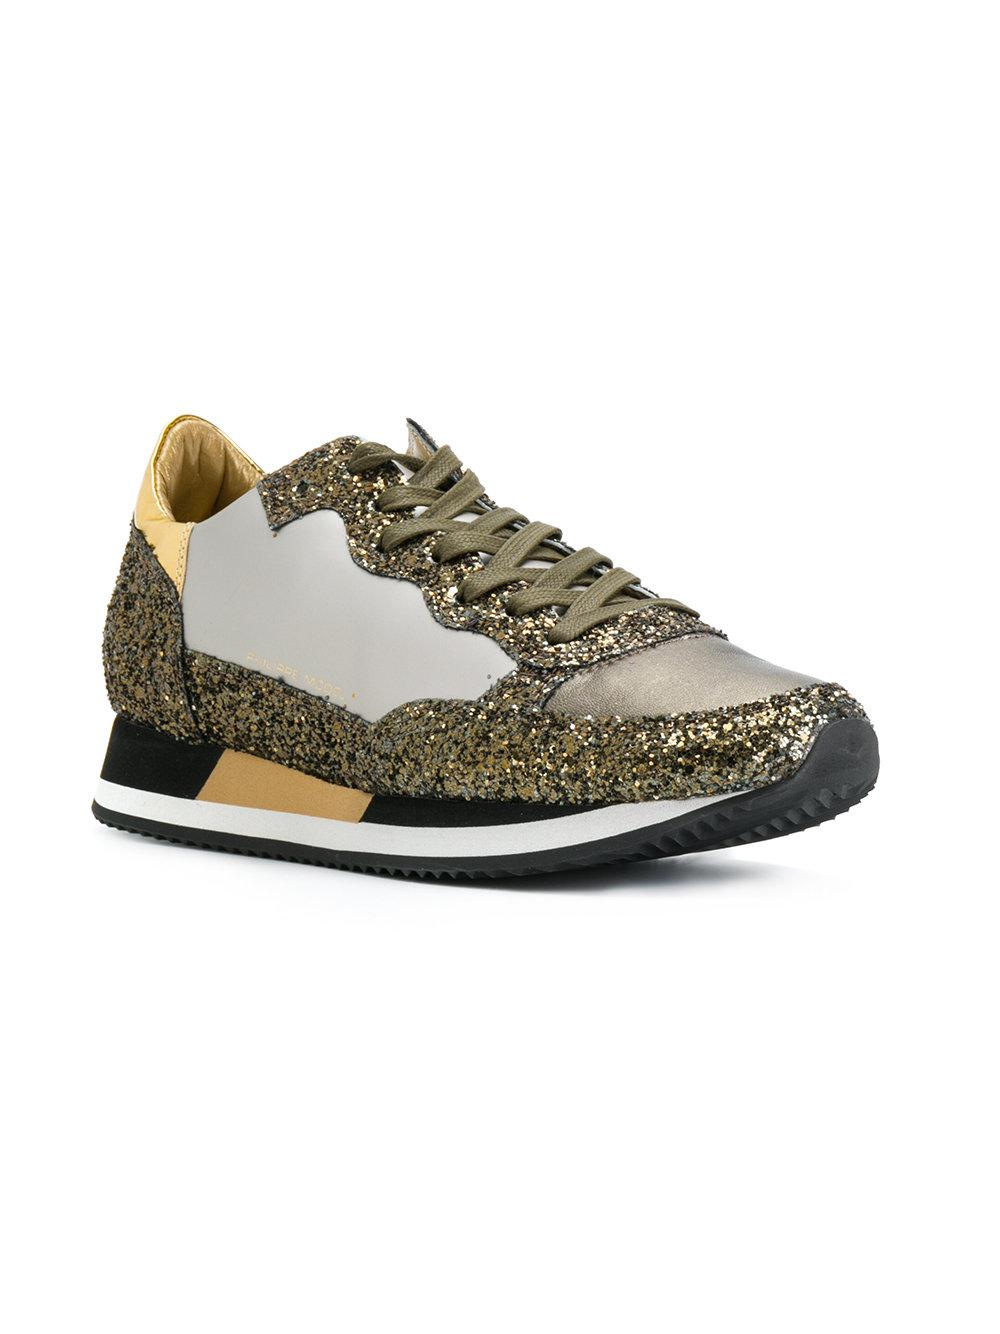 Philippe Model Leather Paradis Glitter Sneakers in Metallic